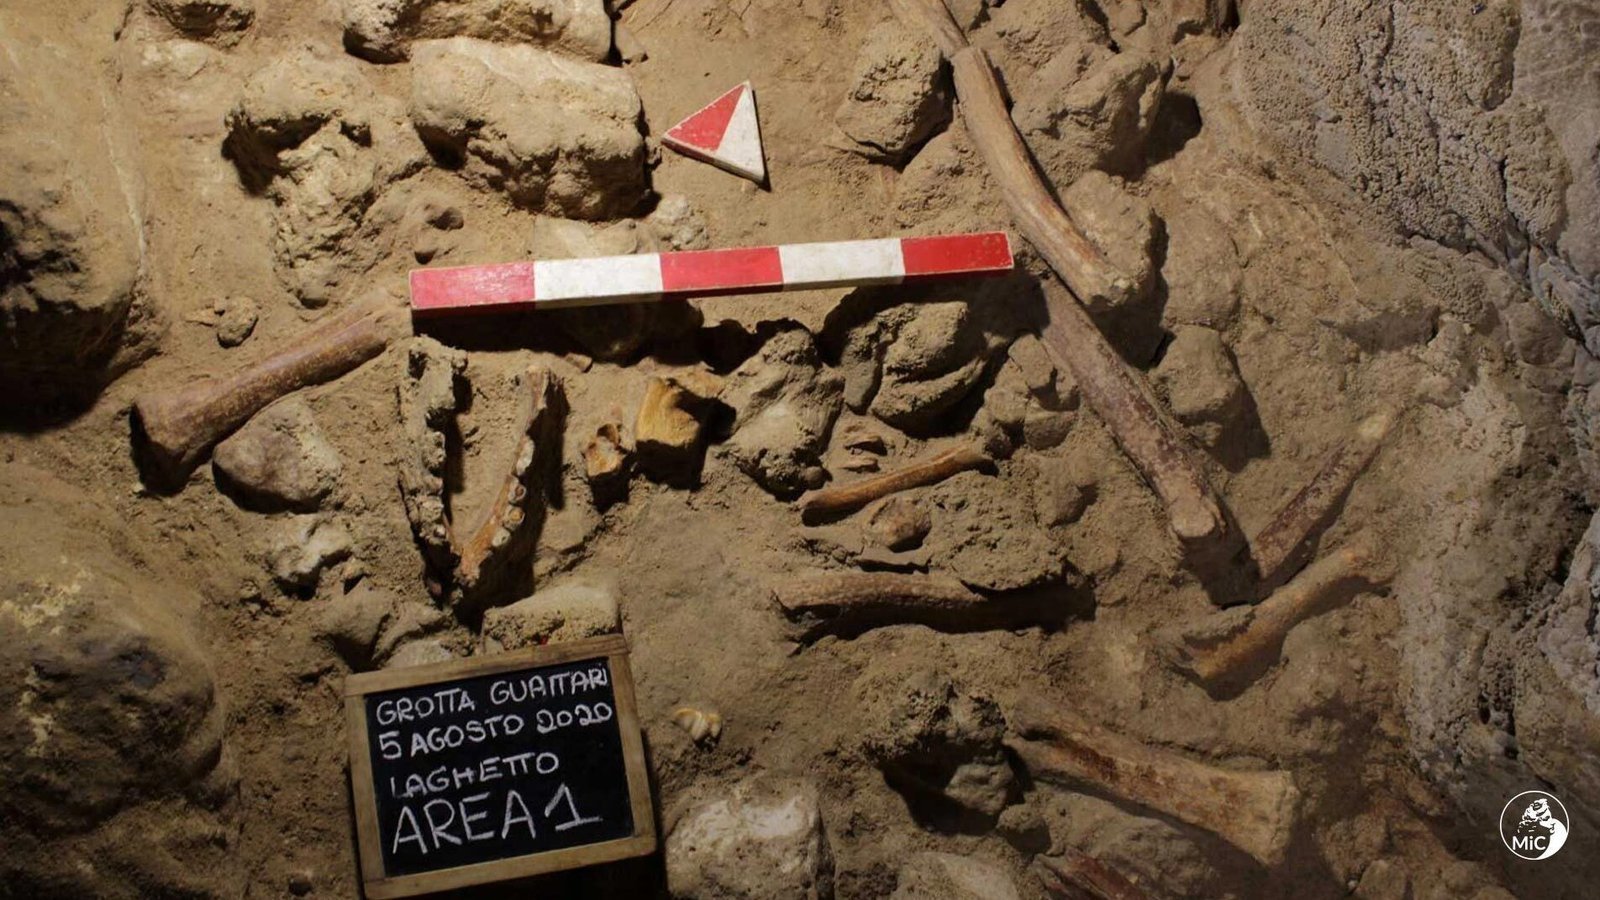 Remains of nine Neanderthal men found in Italian cave